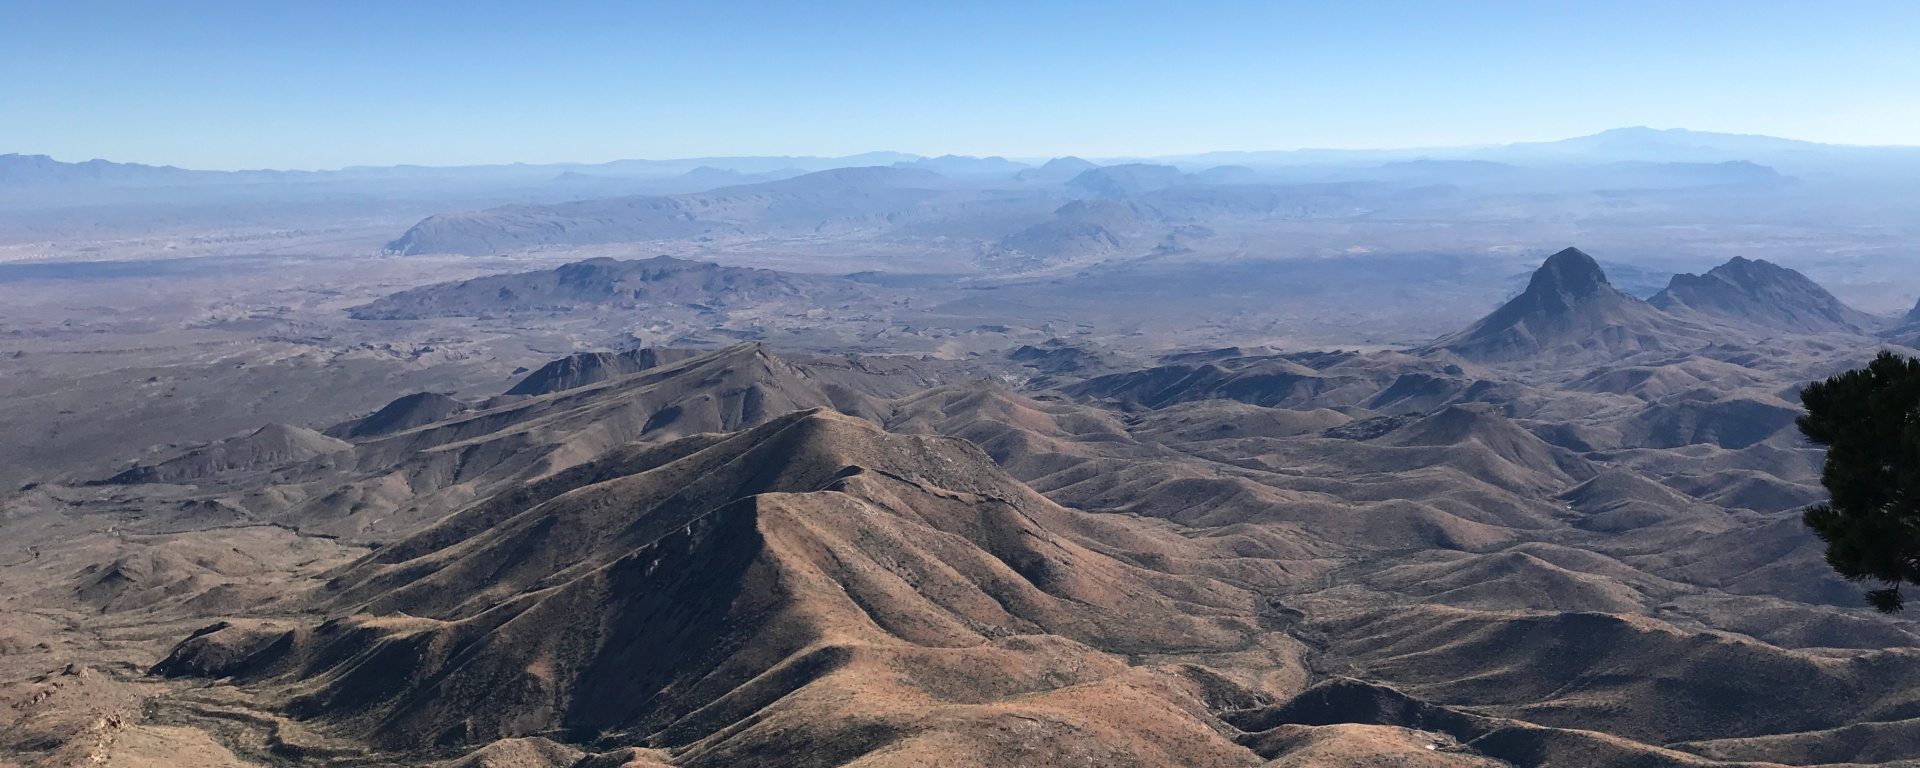 An image of the mountains from a lookout at Big Bend National Park in Texas.